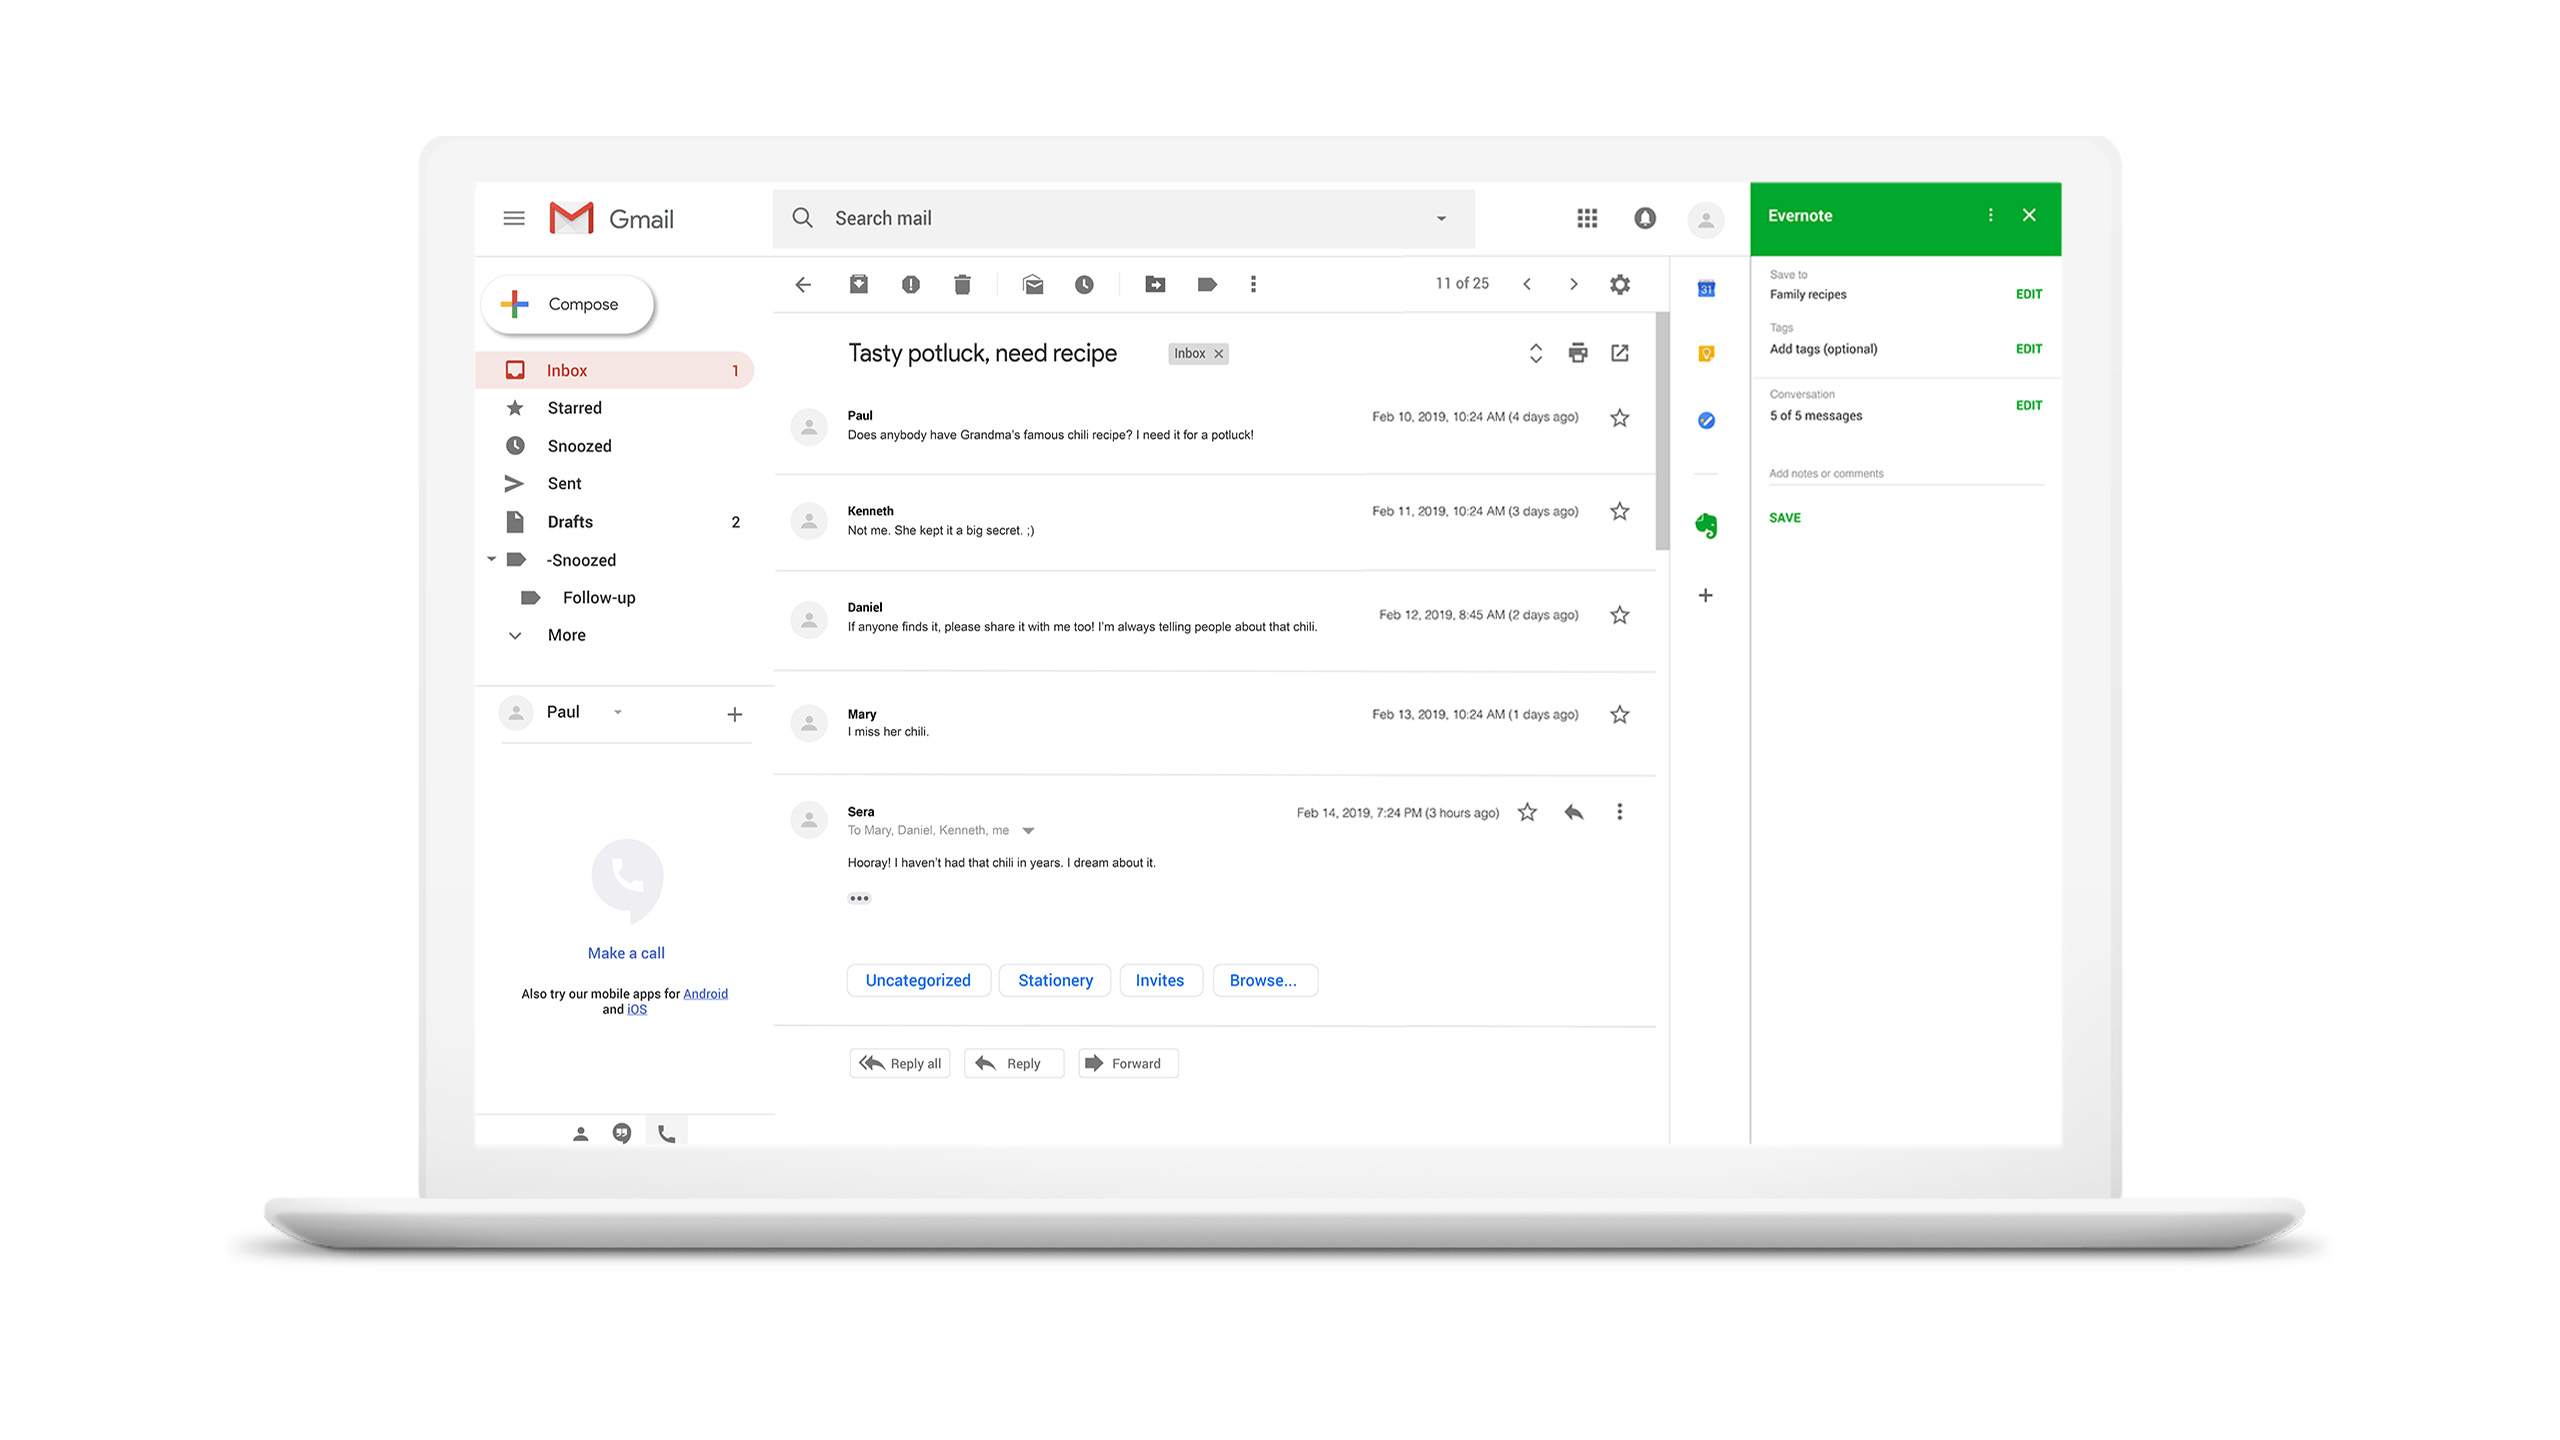 Google will bring third-party add-ons to G Suite 'in the coming months' w/ Box, Evernote, more